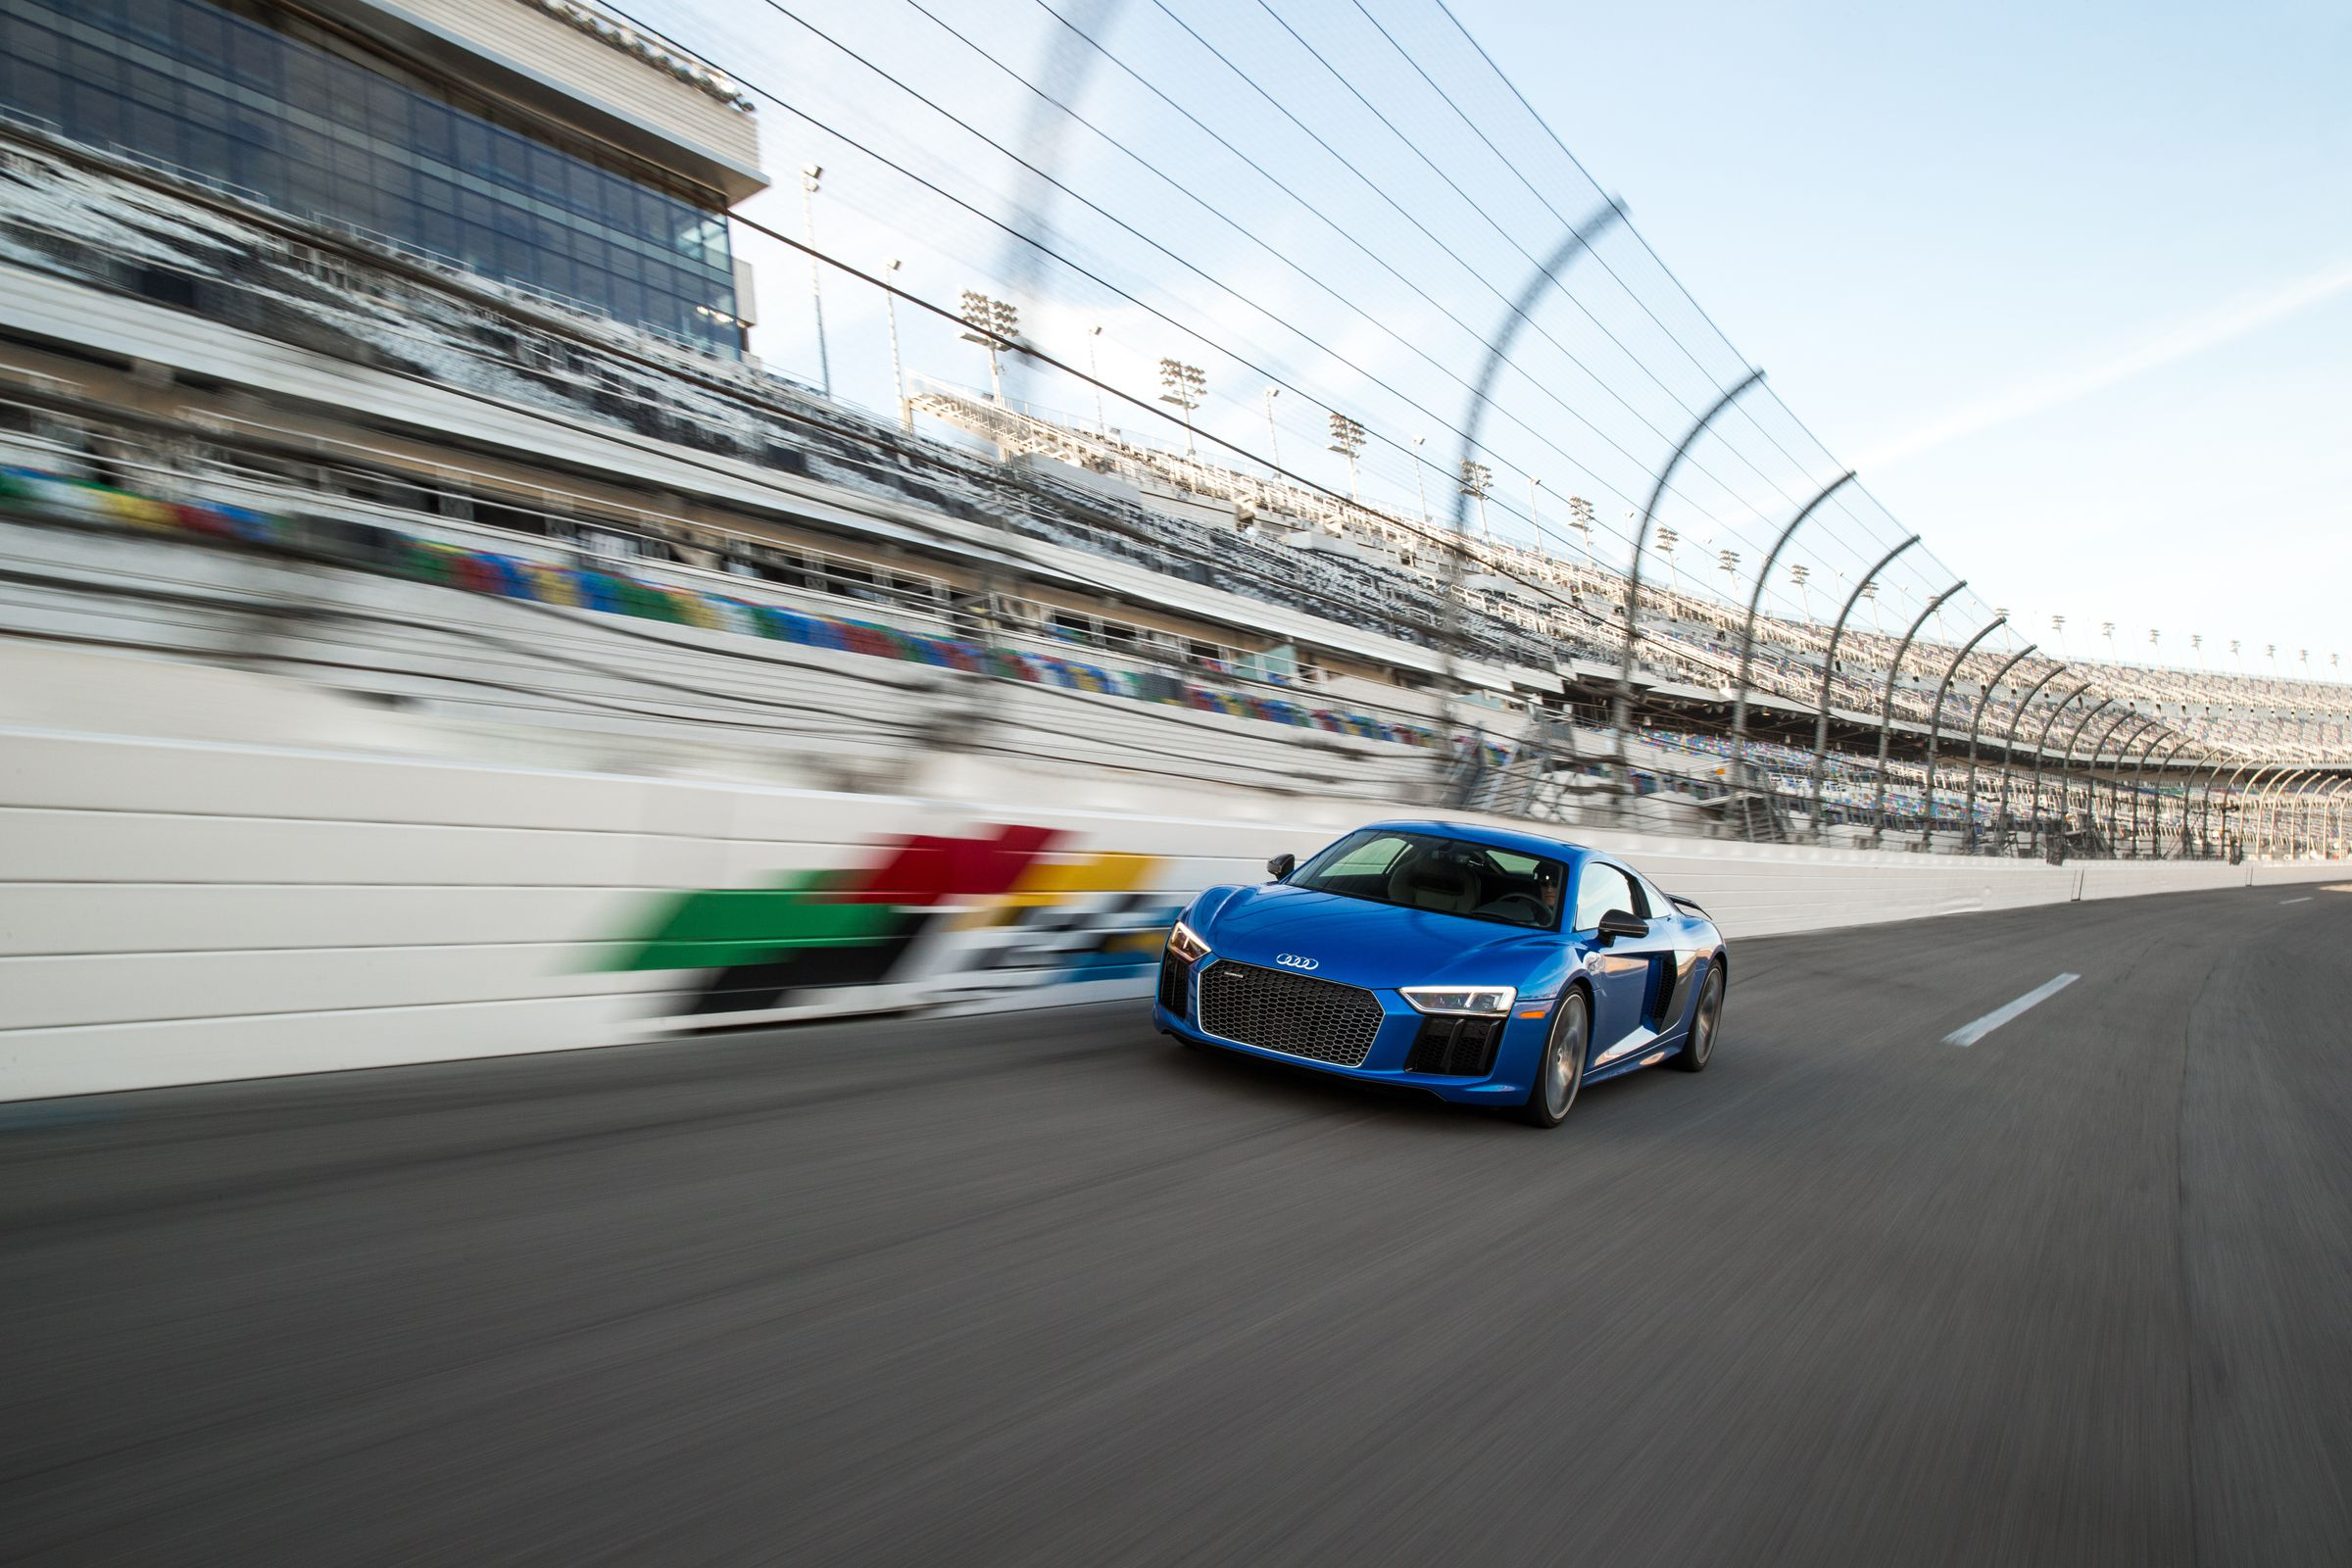 Trusting an Audi R8 at 183 miles per hour | The Verge